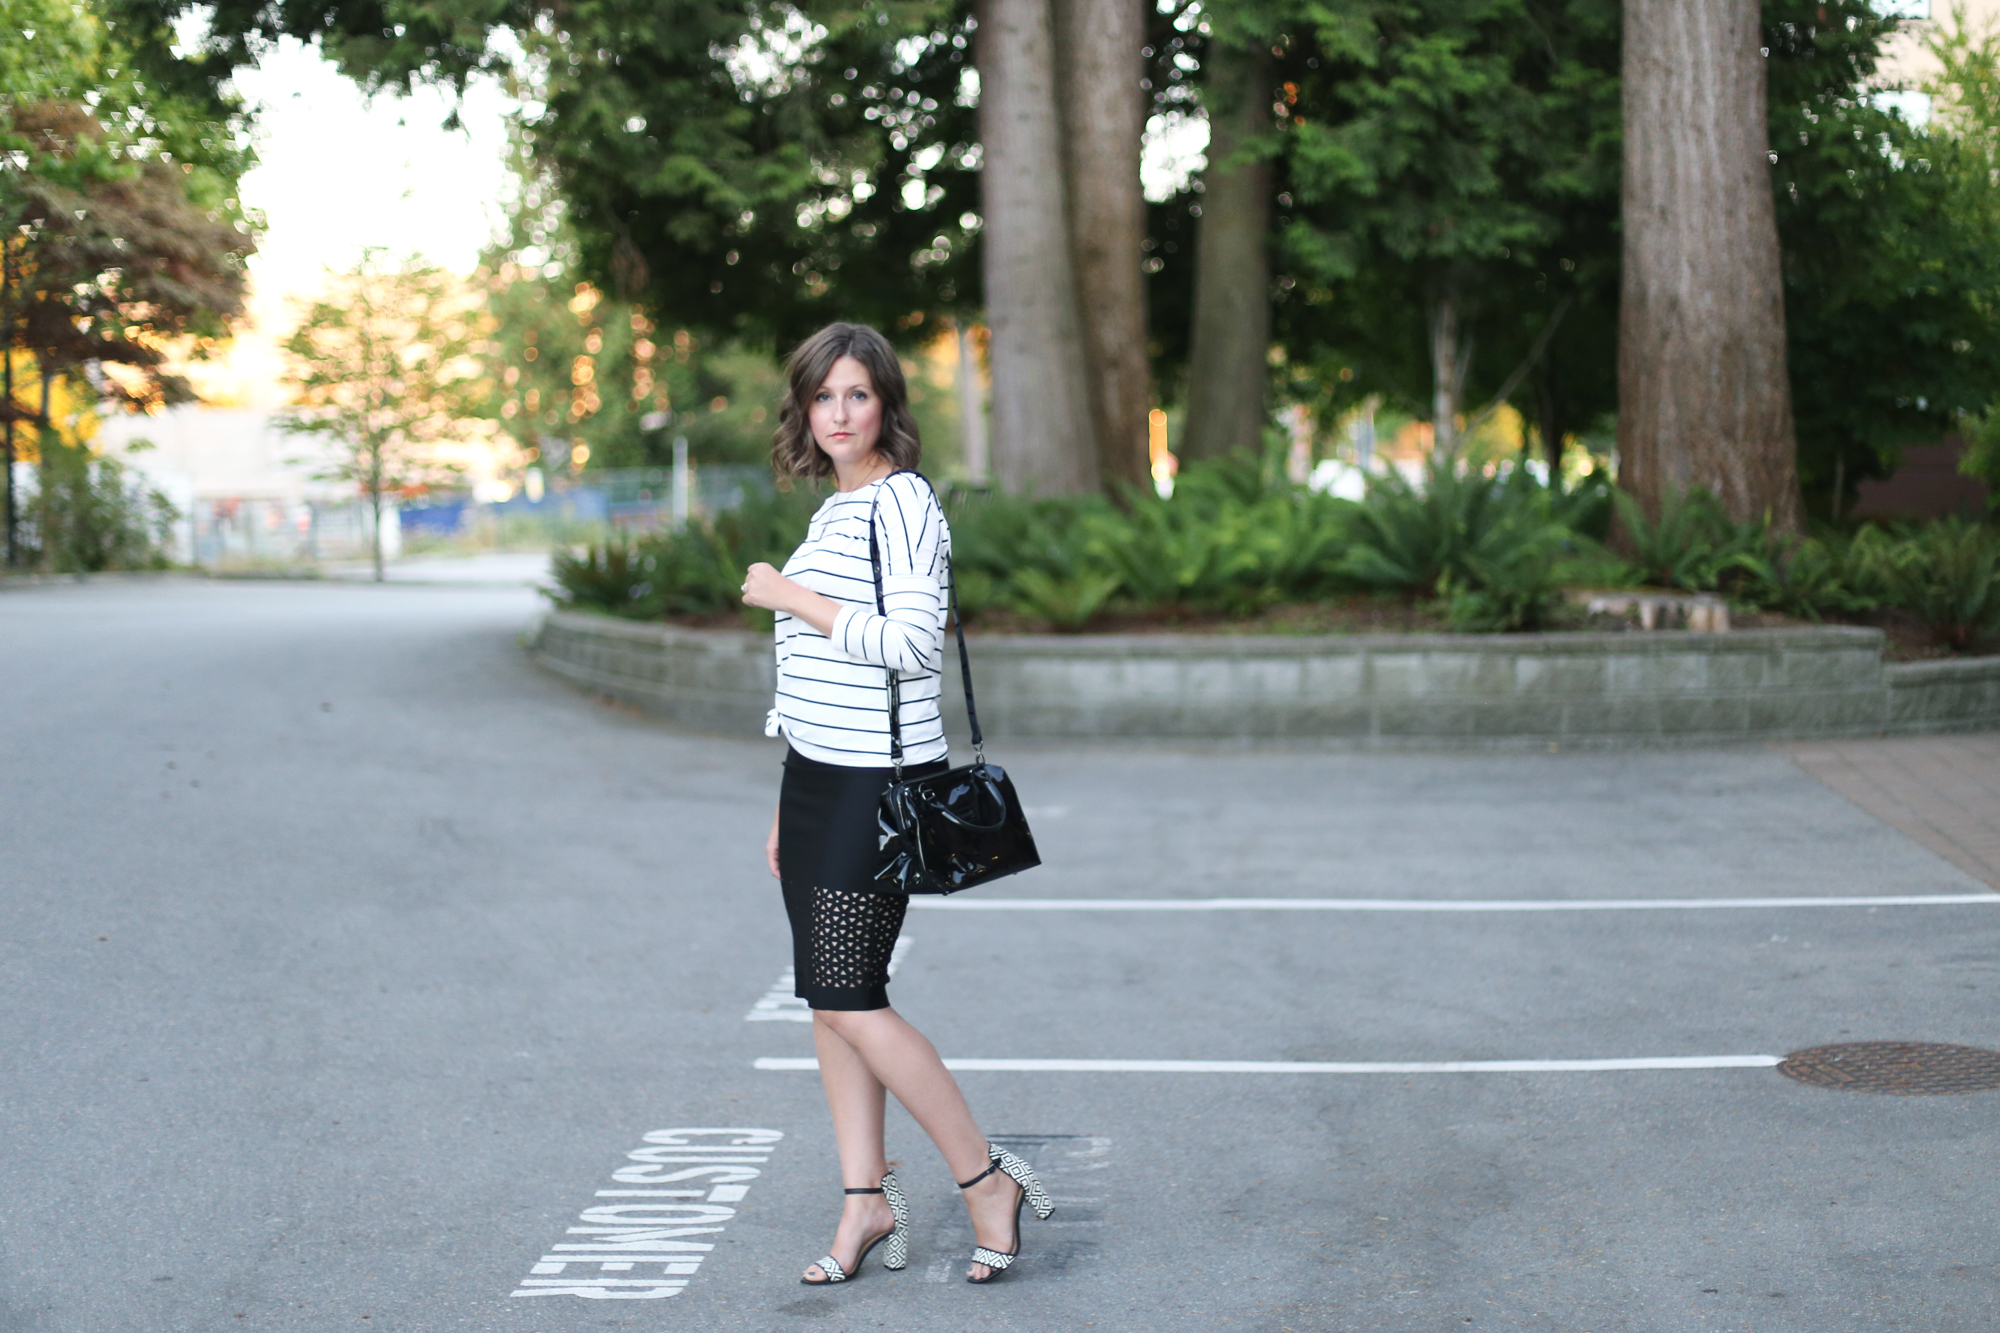 Patent Leather bag, laser cut skirt, striped shirt, lob haircut, and minimalist sandals.  #ootd